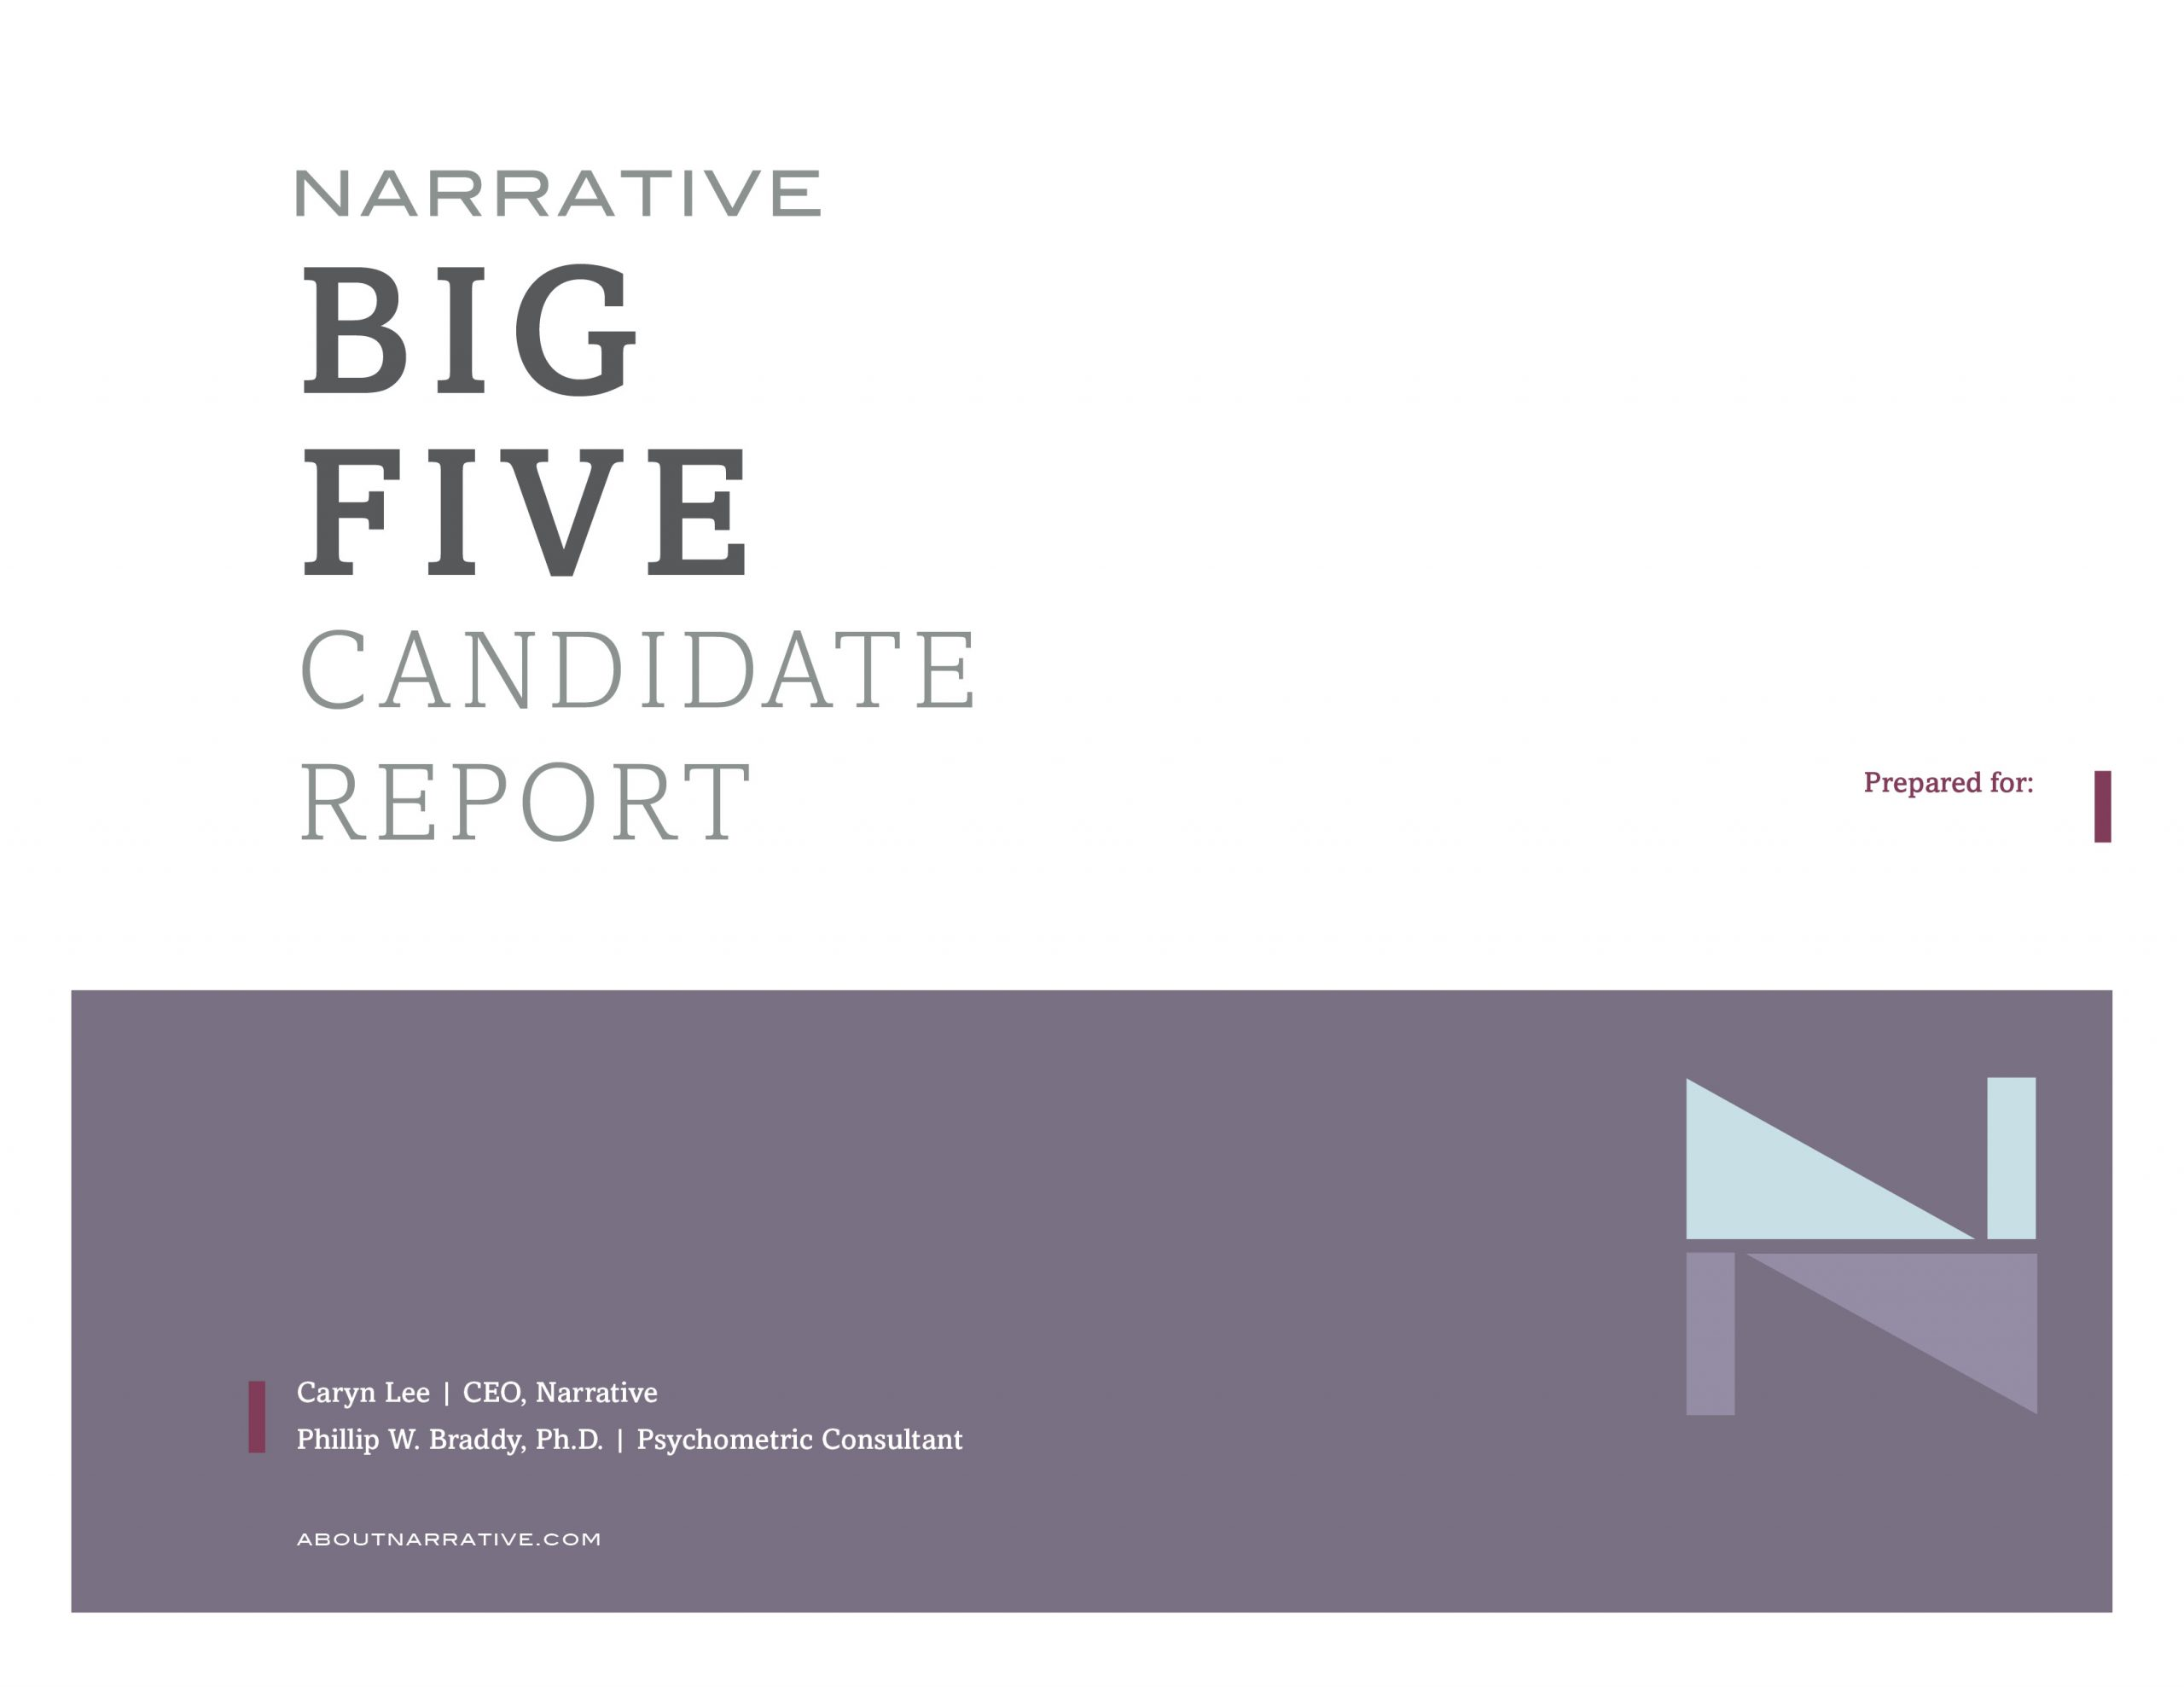 NARRATIVE CandidateReport COVER scaled